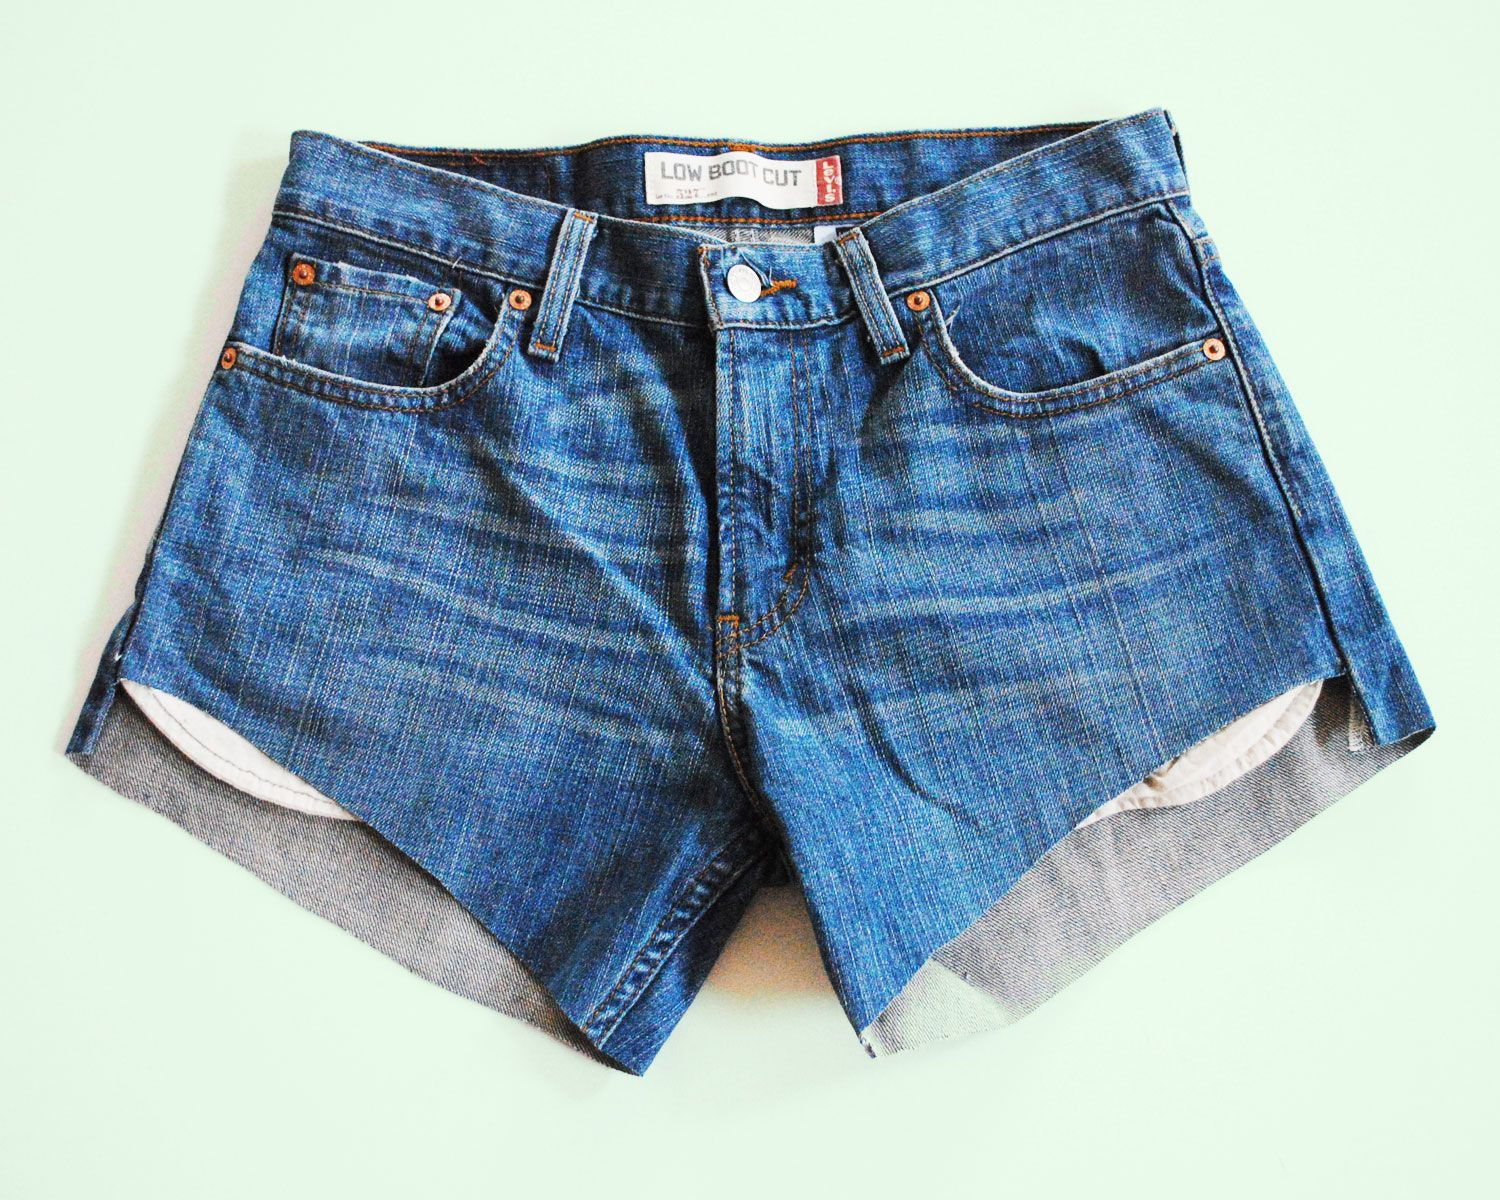 How to cut diy denim cutoffs the right way | DIY Projects ...